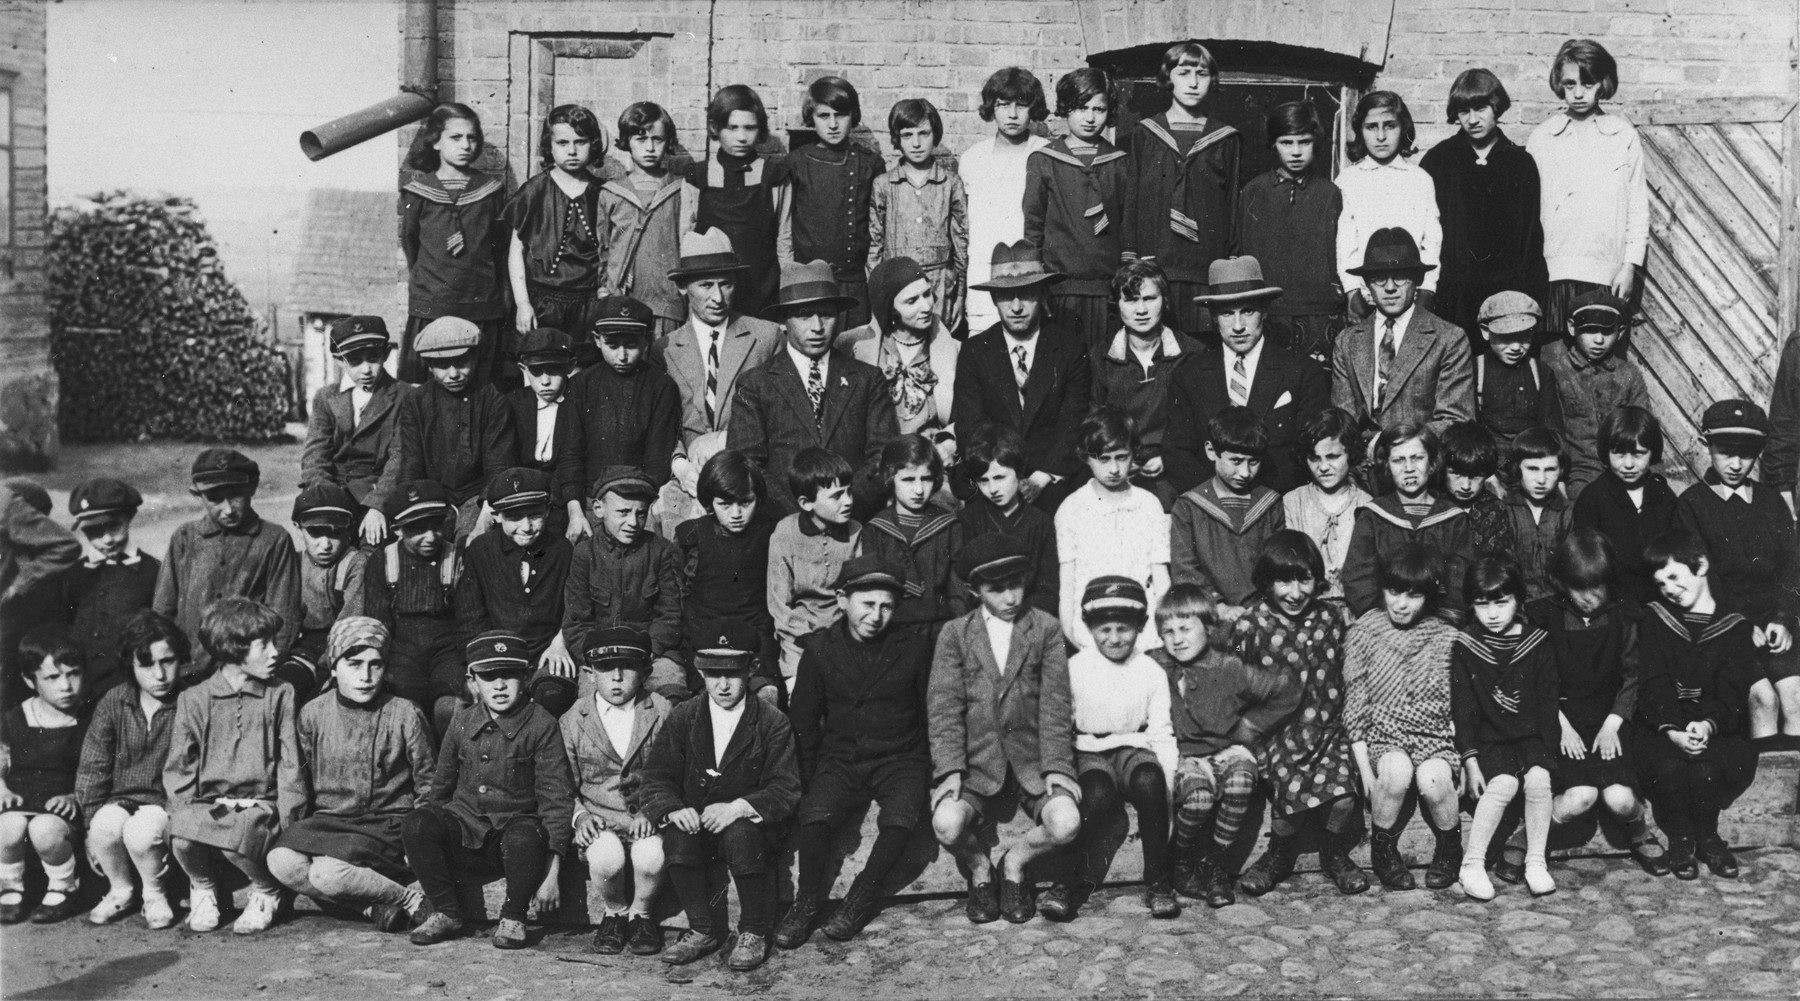 Group portrait of students and teachers at the Hebrew language Tarbut school in Grodek.    Among those pictured is Ralph Denishevsky (third row, fourth from the right).